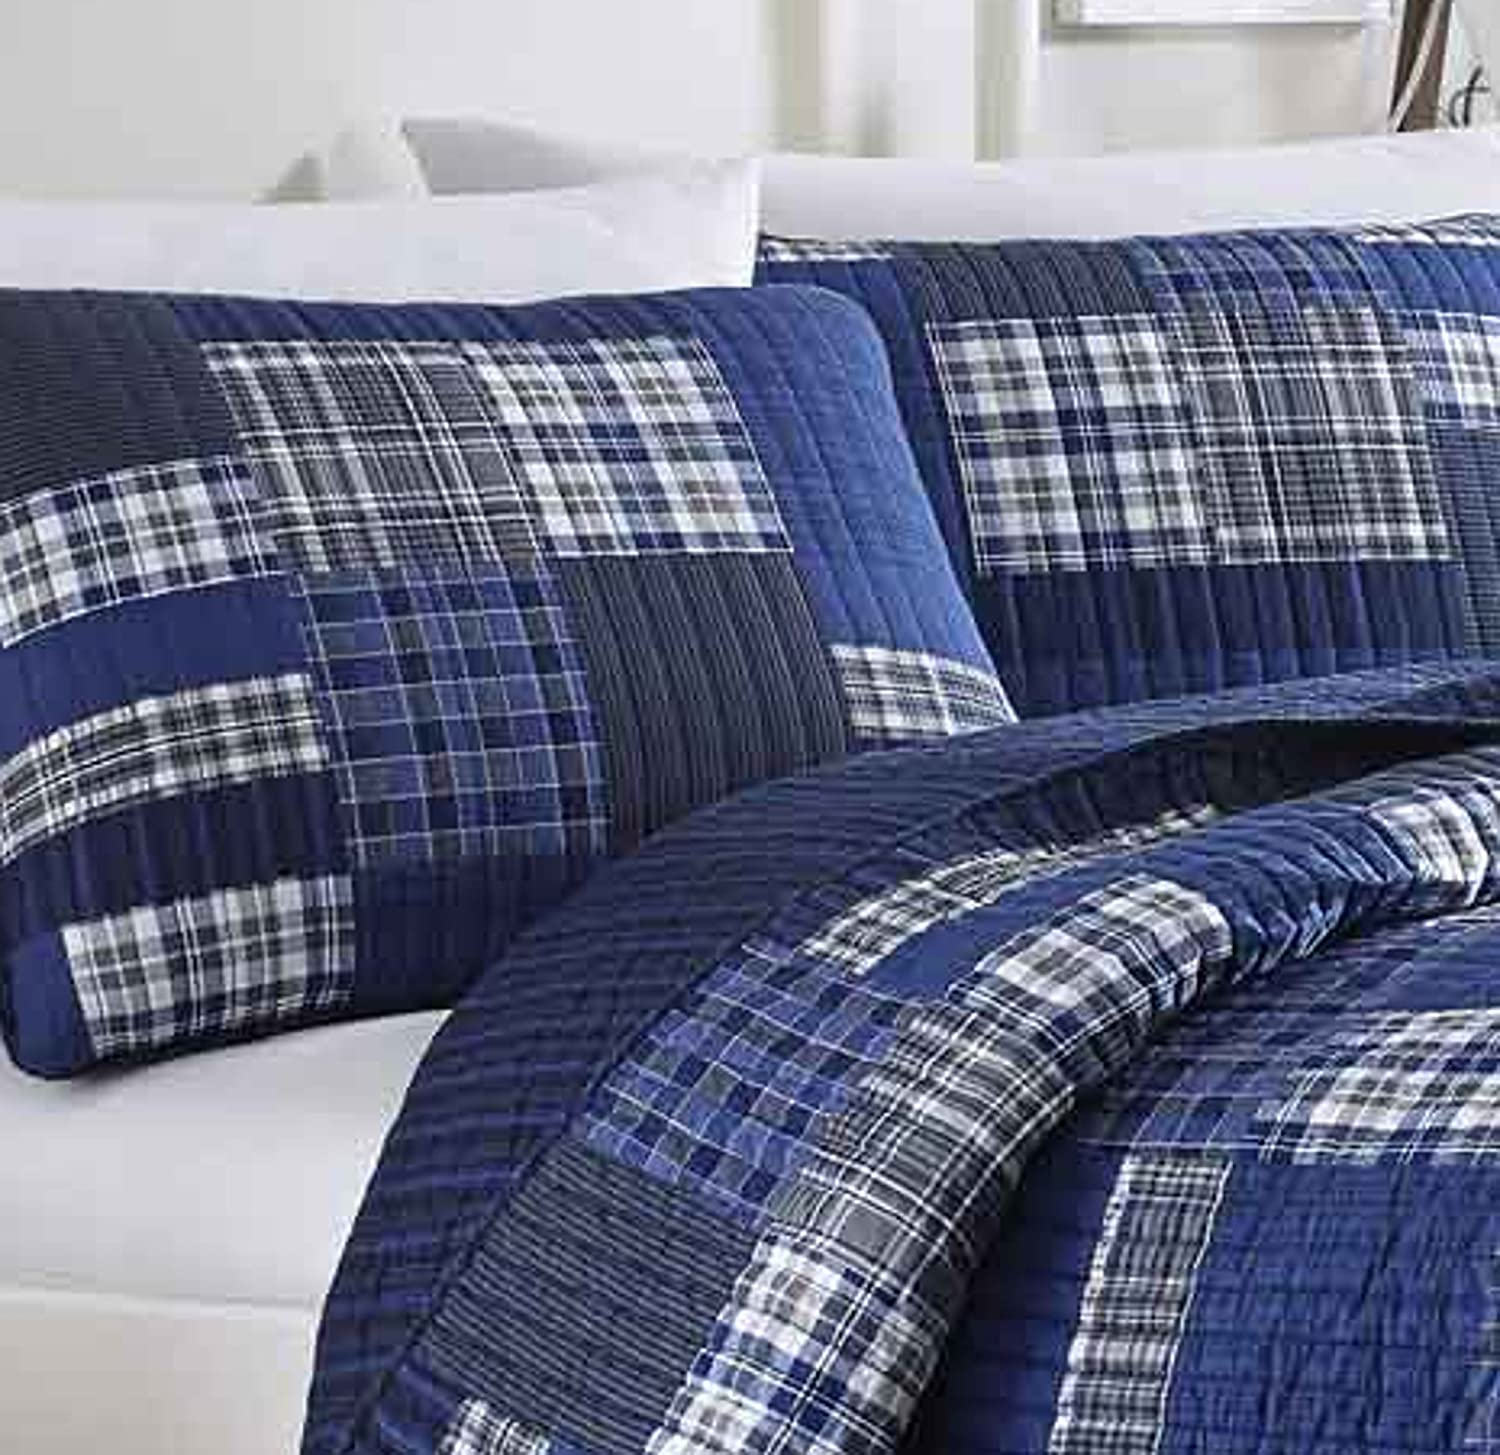 Amazon Com Eddie Bauer Home Eastmont Collection 100 Cotton Reversible Light Weight Quilt Bedspread With Matching Sham 2 Piece Bedding Set Pre Washed For Extra Comforttwinblue Home Kitchen